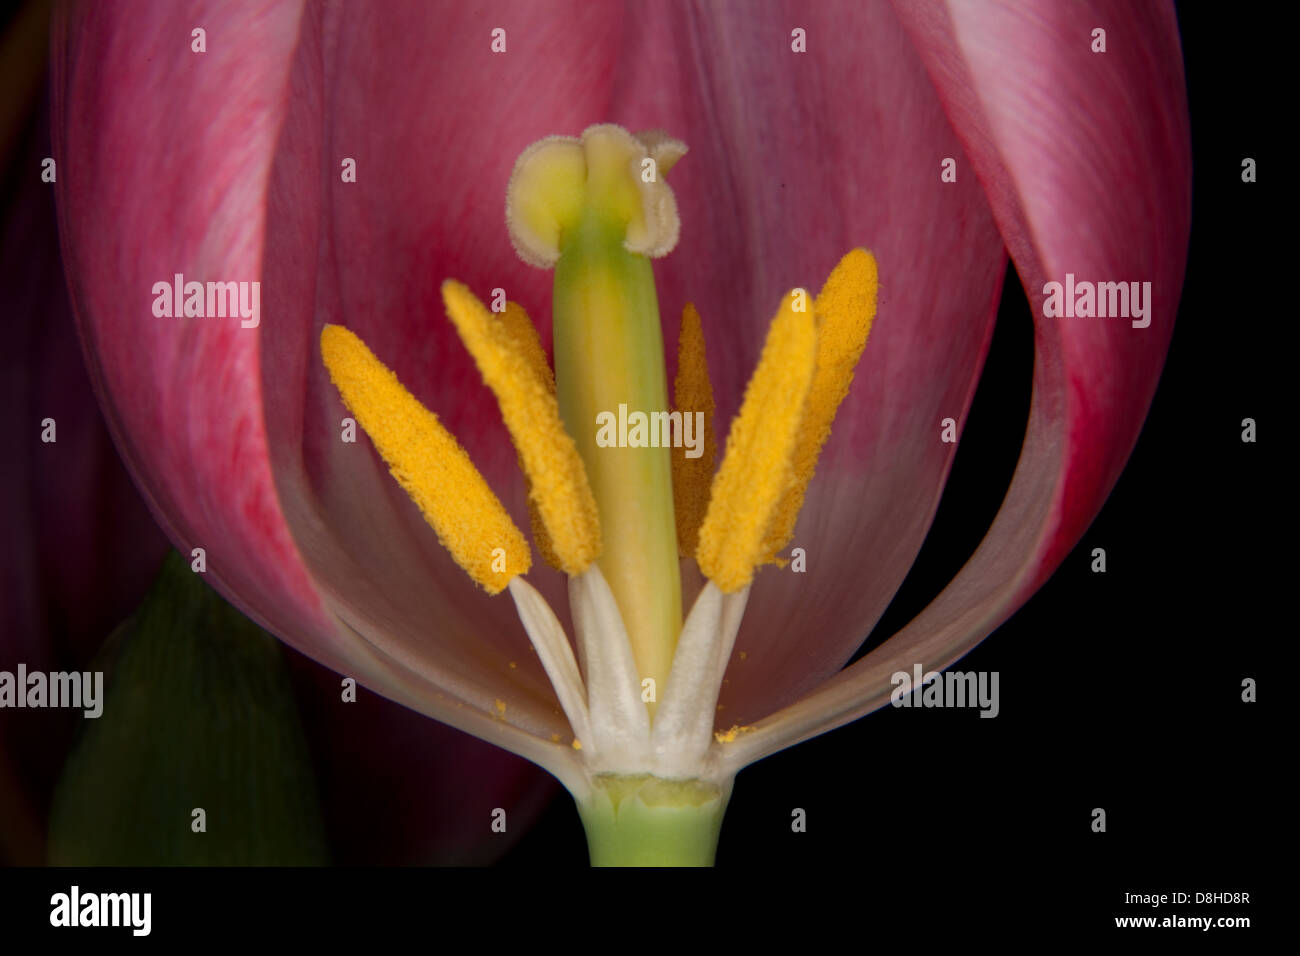 Macro Detail Of Pink Tulip Anthers and Stigma - Stock Image